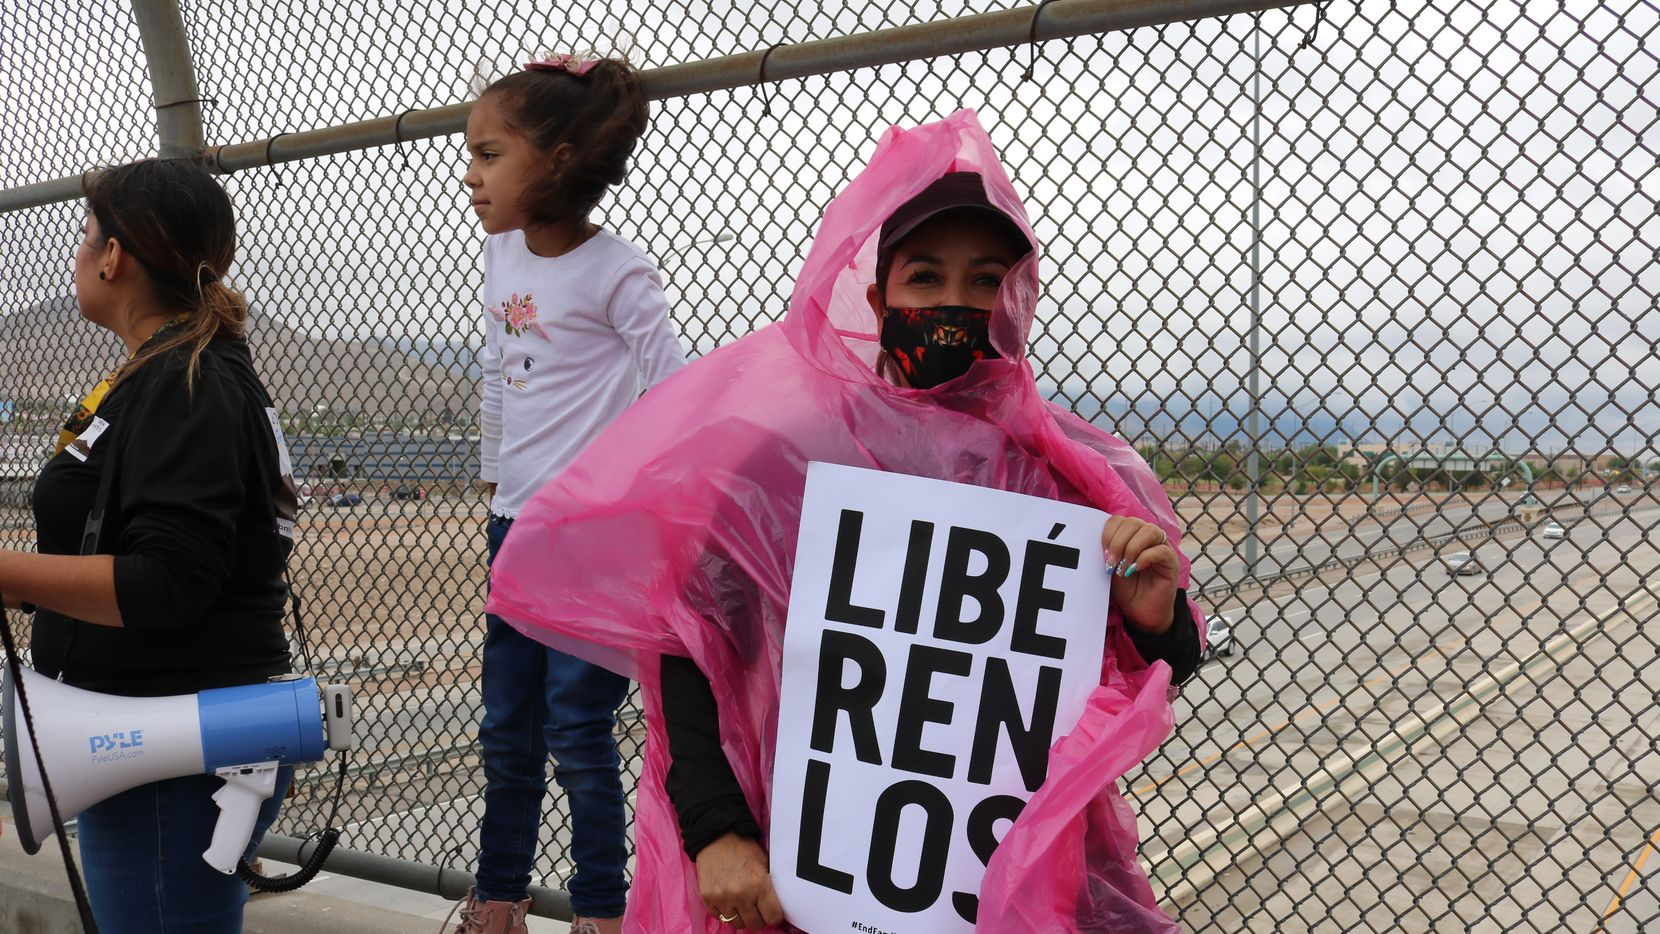 Lourdes Vázquez holds a banner at a demonstration by the Border Network for Human Rights group calling for the release of migrant children being held at Fort Bliss in El Paso. To one side is Dulce Carlos, 29, holding a megaphone, and her 7-year-old daughter Myriam Chavarría.